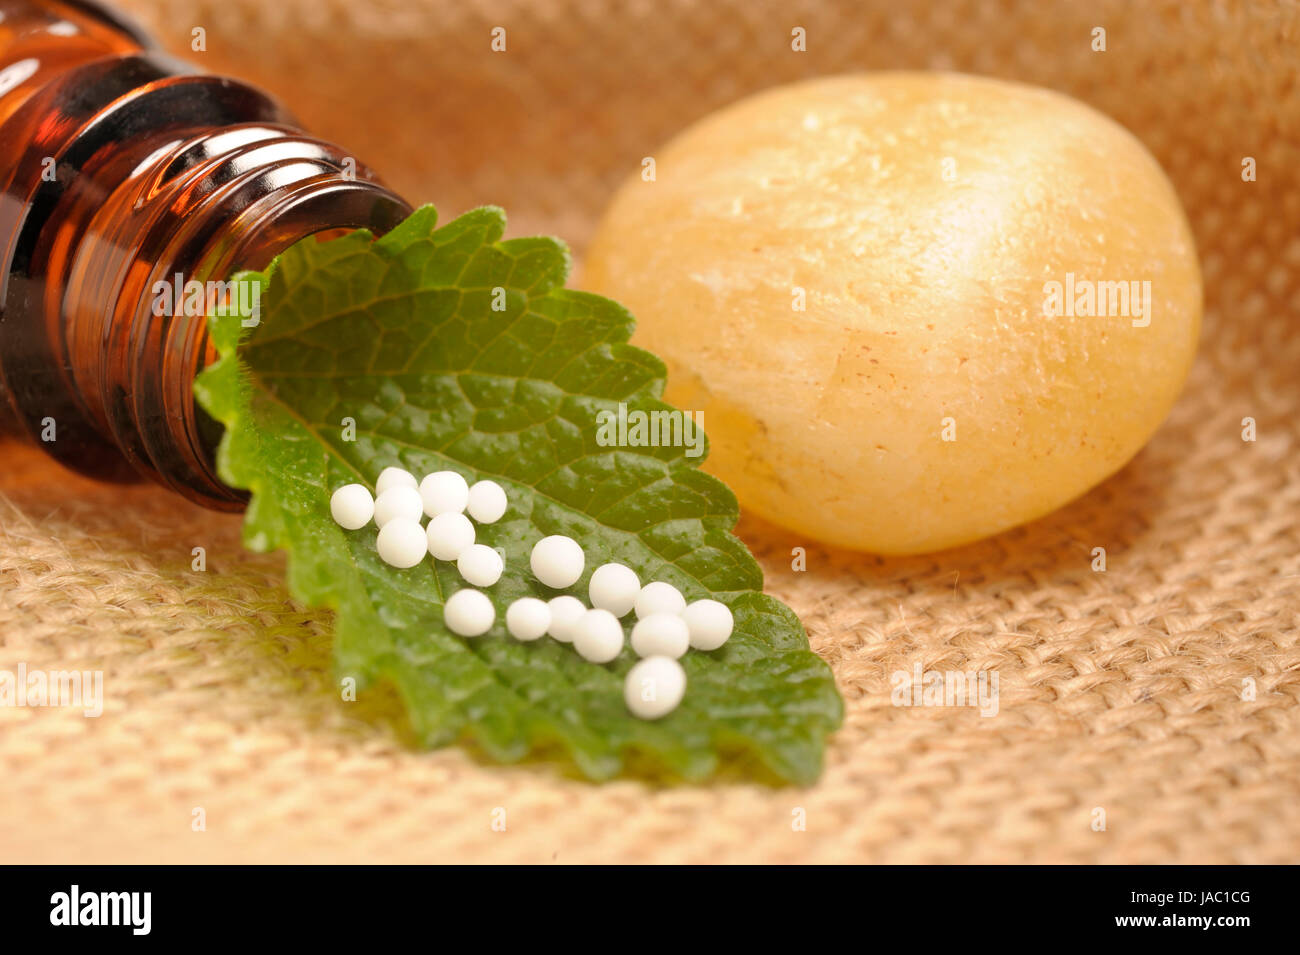 homeopathic globules as therapy for alternative medicine - Stock Image